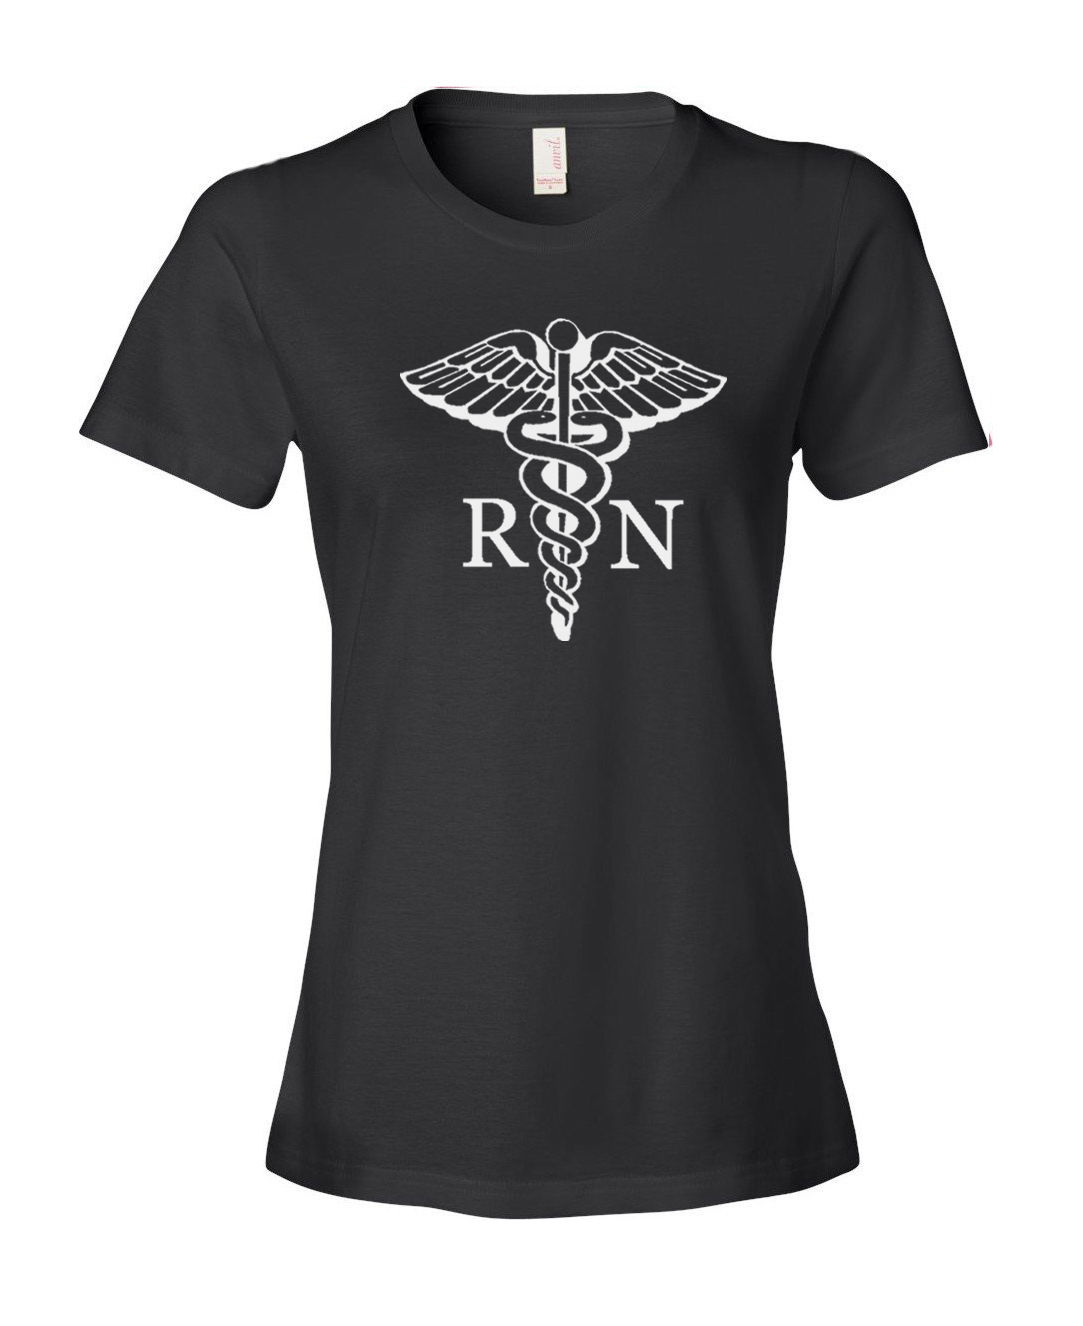 New Fashion T Shirt Graphic Letter Short O-Neck Compression Womens Rn Registered Nurse T Shirts